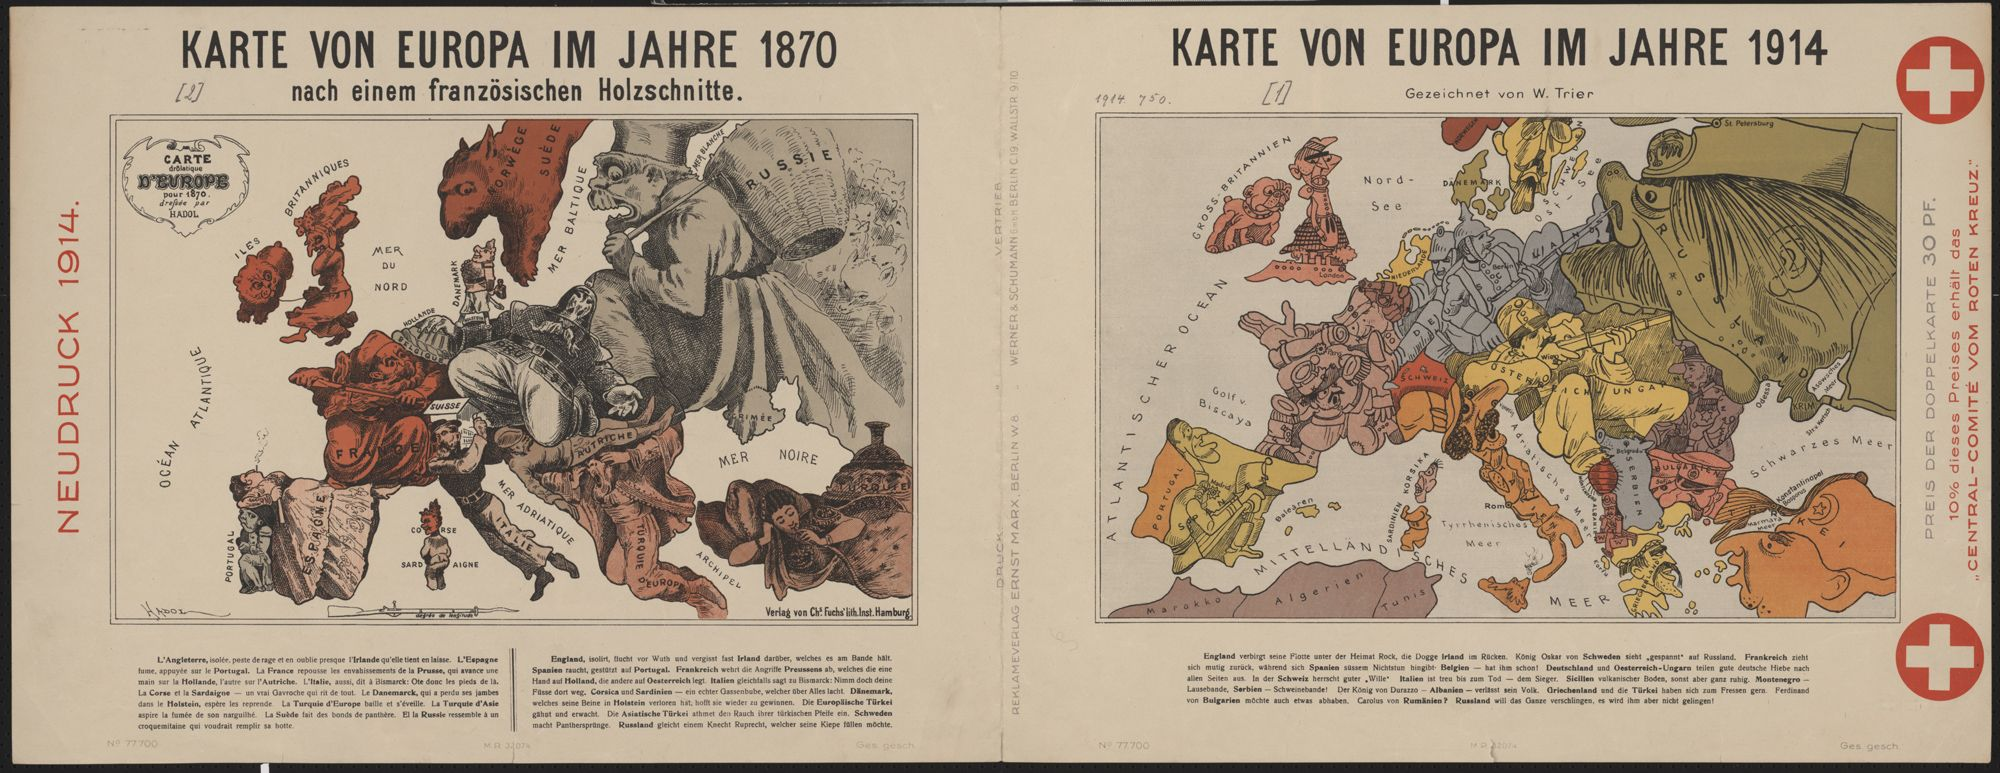 Map Showing Europe%0A Satirical maps comparing the political situations in Europe in the years       and The lefthand map depicts the continent at the beginning of the